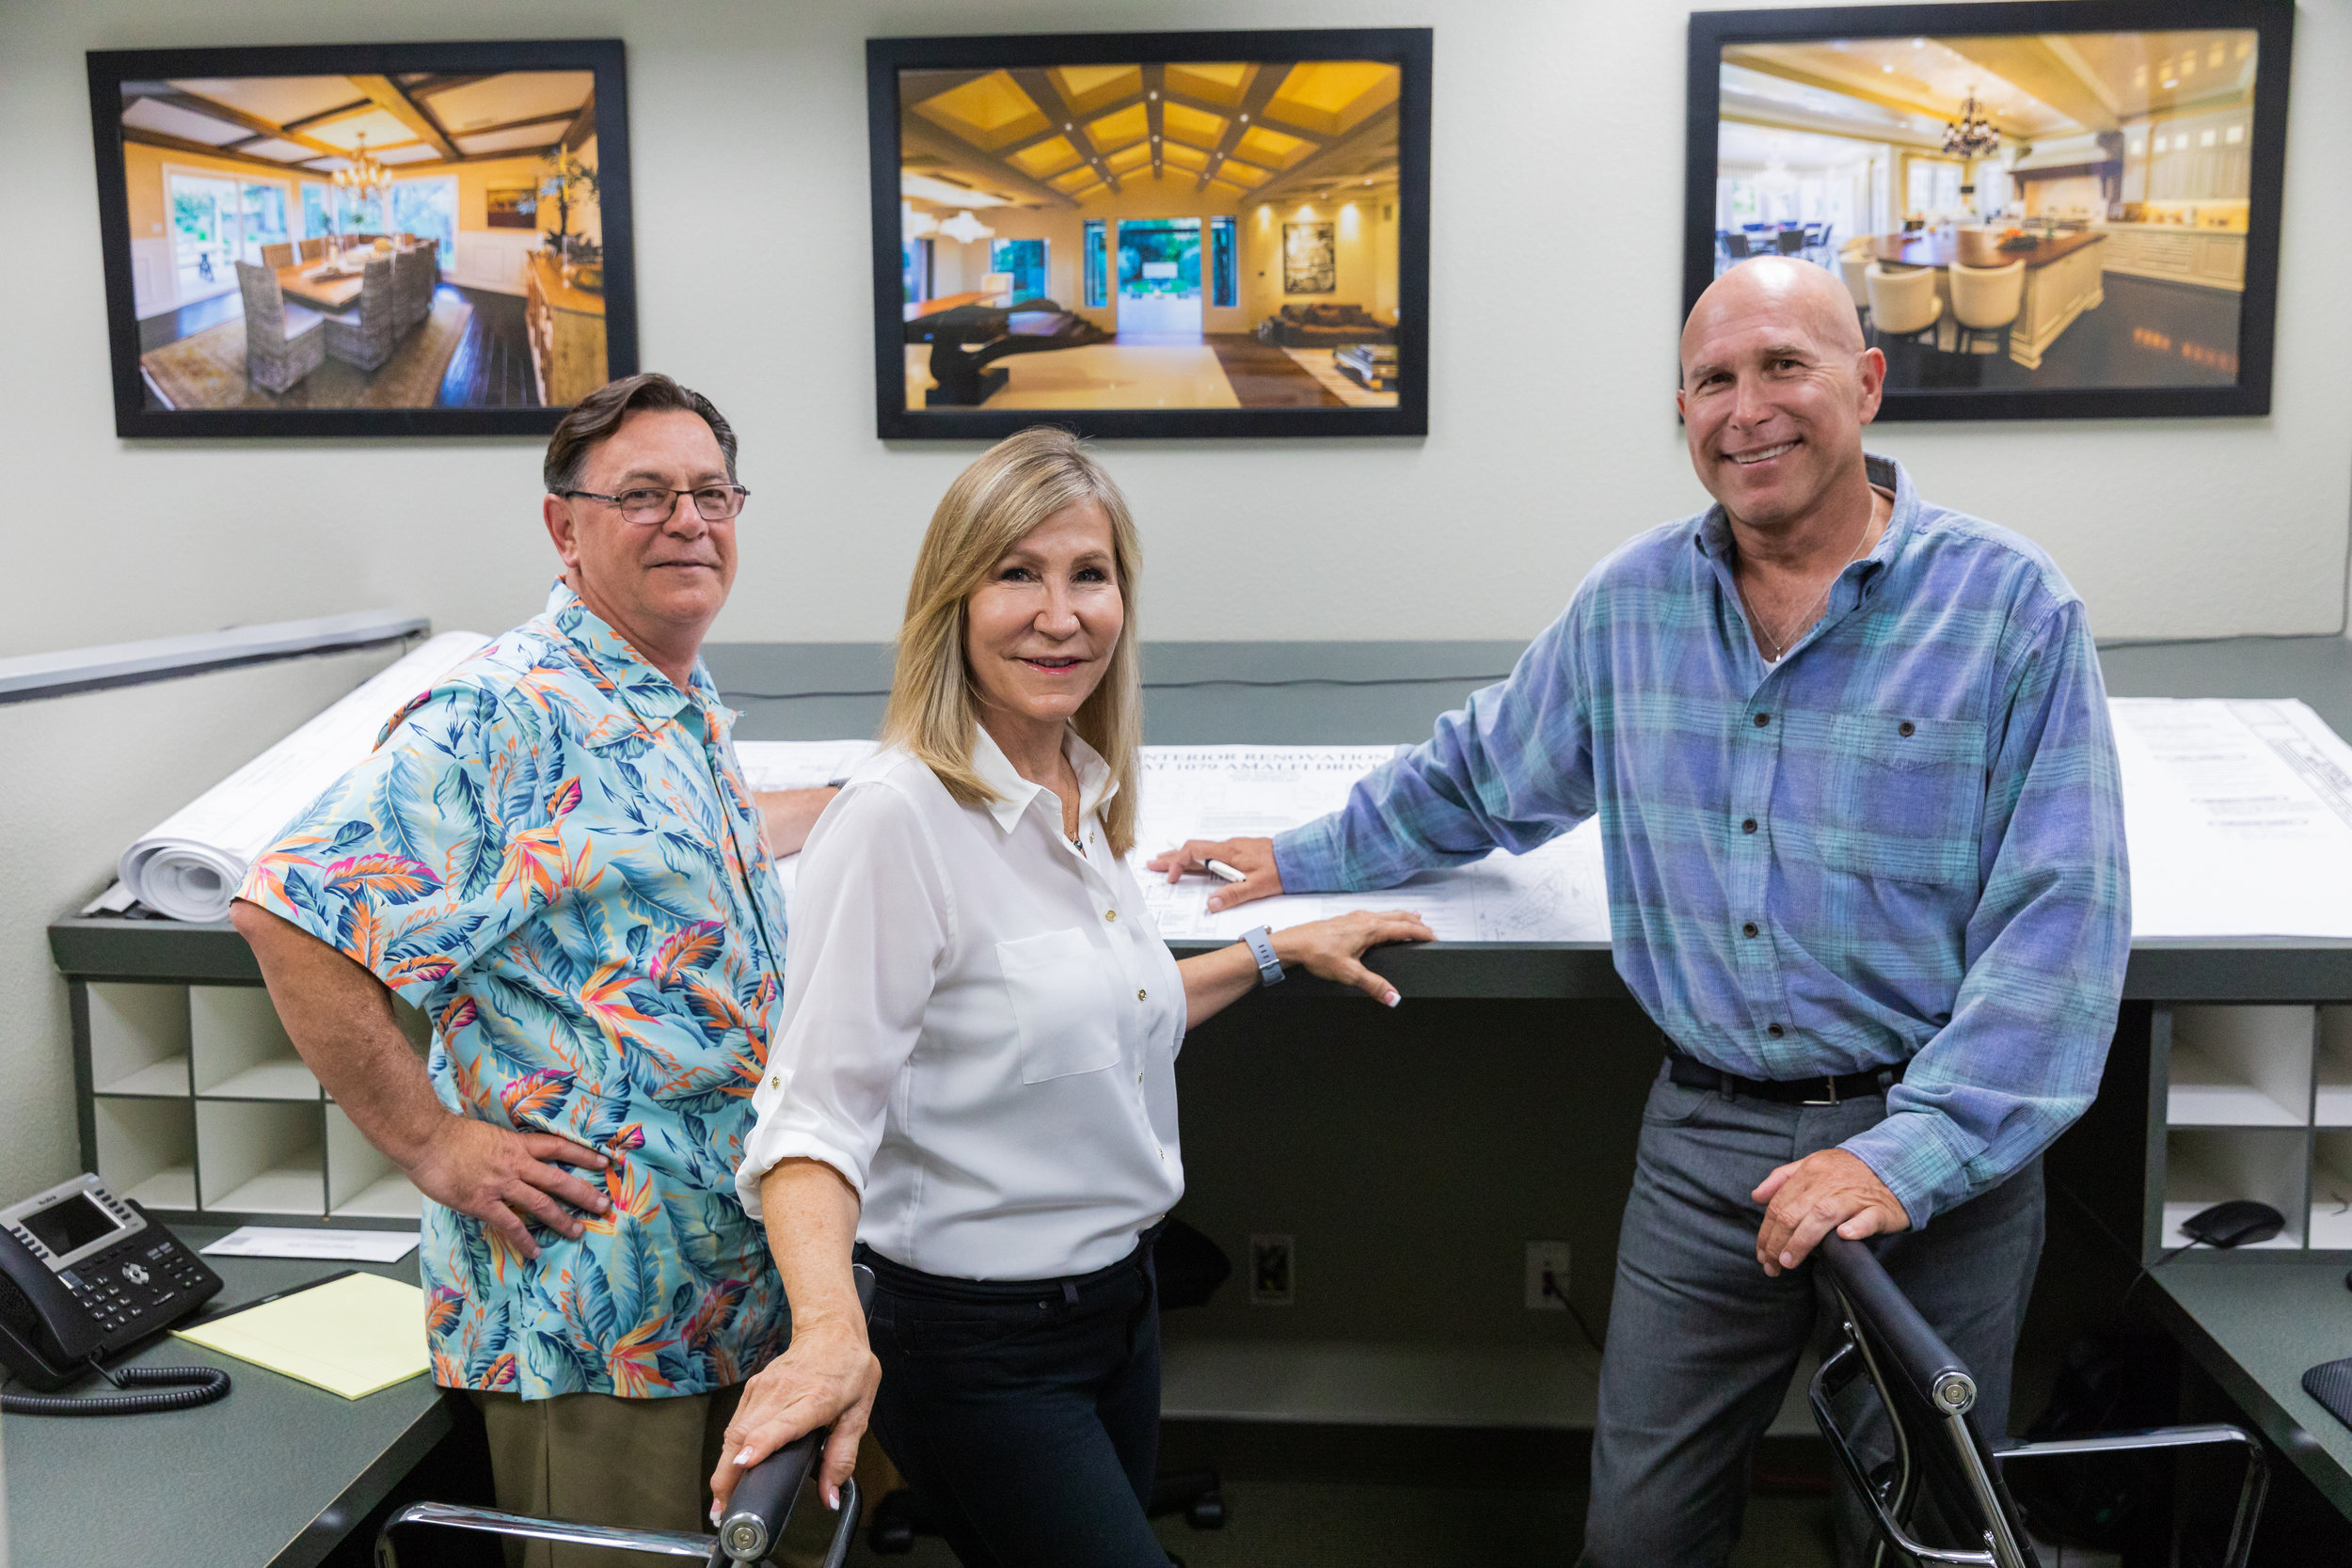 The Team Principals Karen Arri-LeCron and James LeCron work with their contracting partner Bob Neisner (right) from the onset of design, ensuring plans stay within budget.